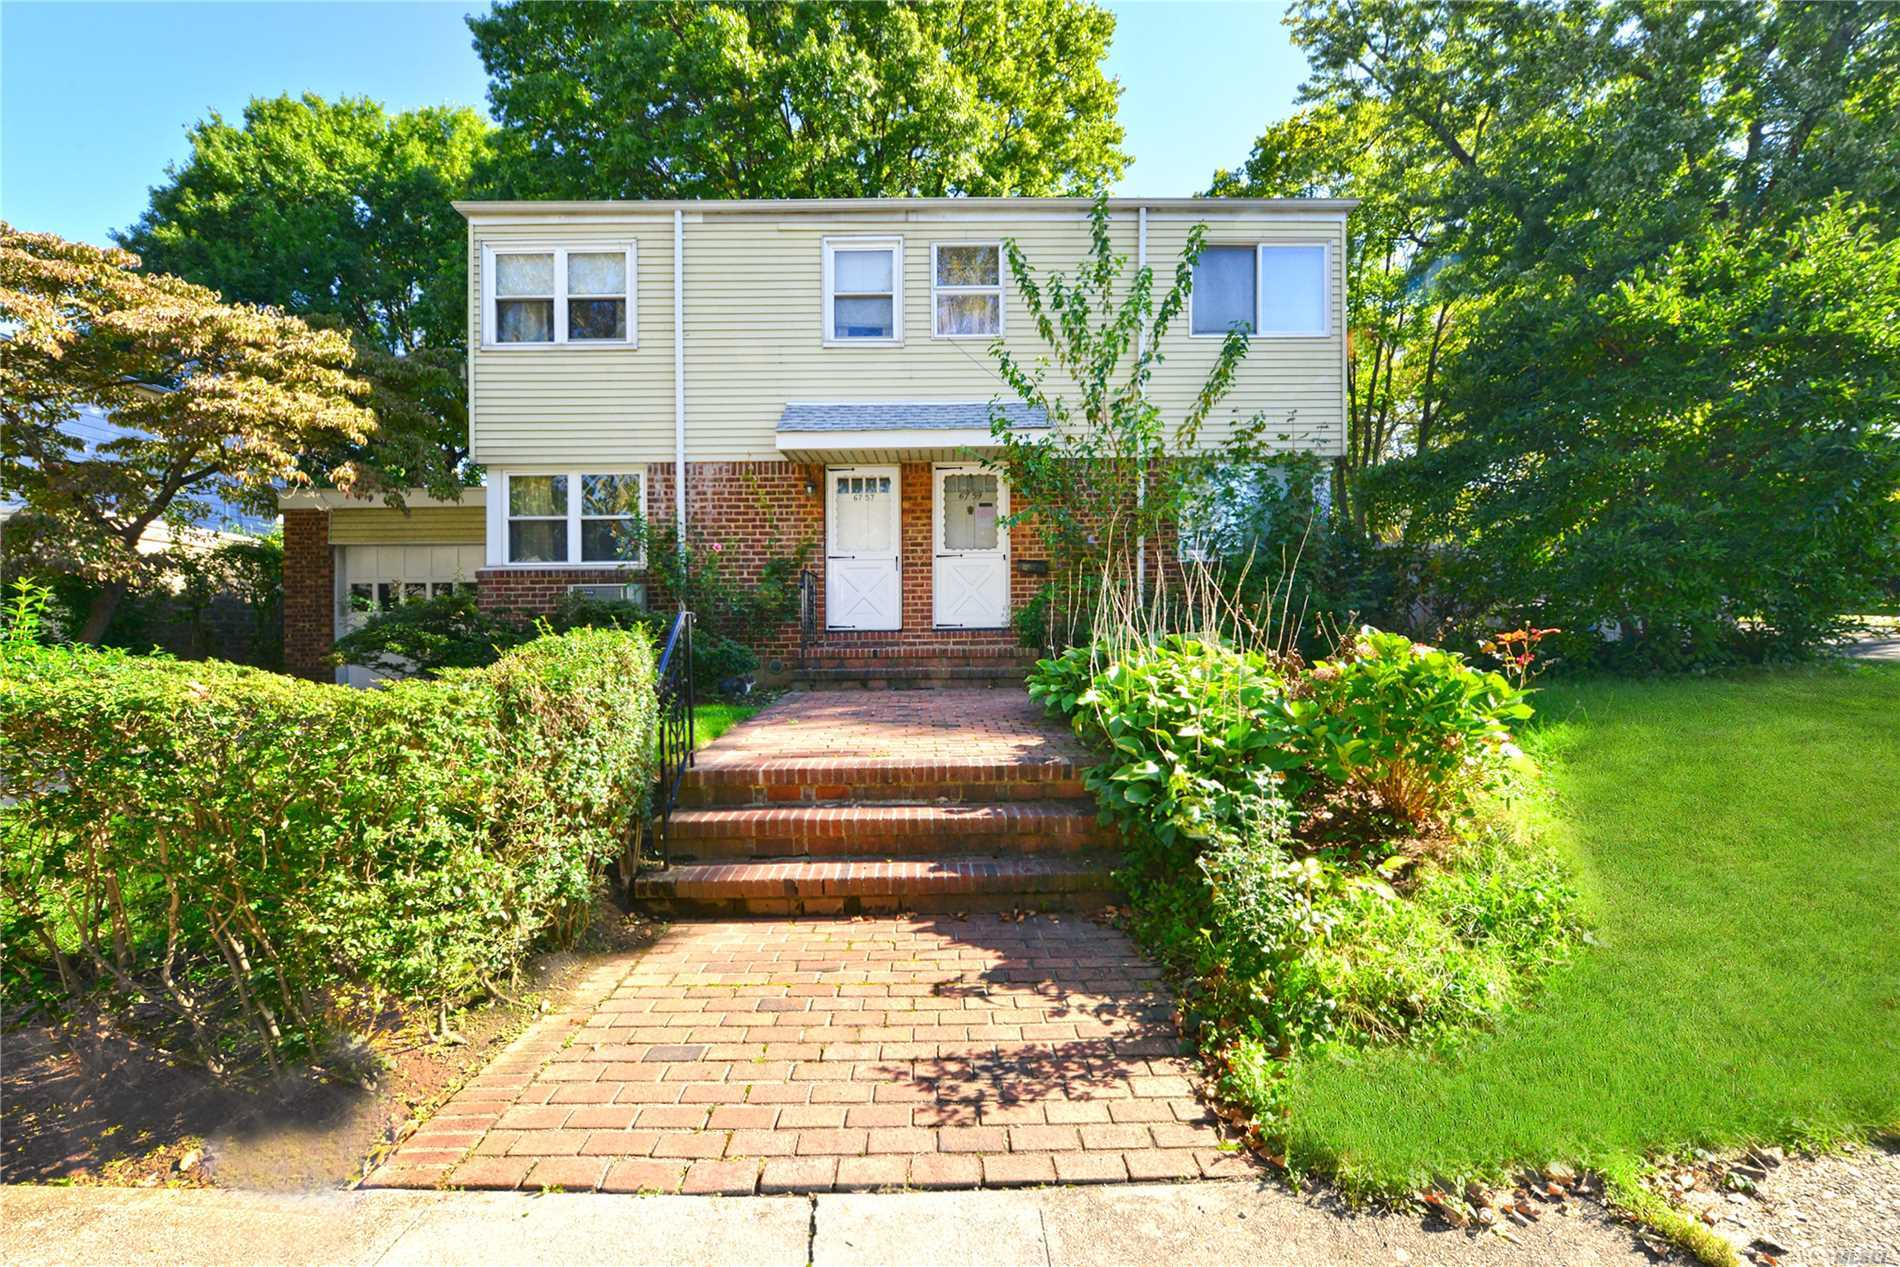 Just Arrived! Semi-Detached Colonial On A Quiet Tree Lined Street In Bayside. Conveniently Located To Shopping & Transportation S.D.26: P.S.46, J.H.S.74, Cardozo H.S.